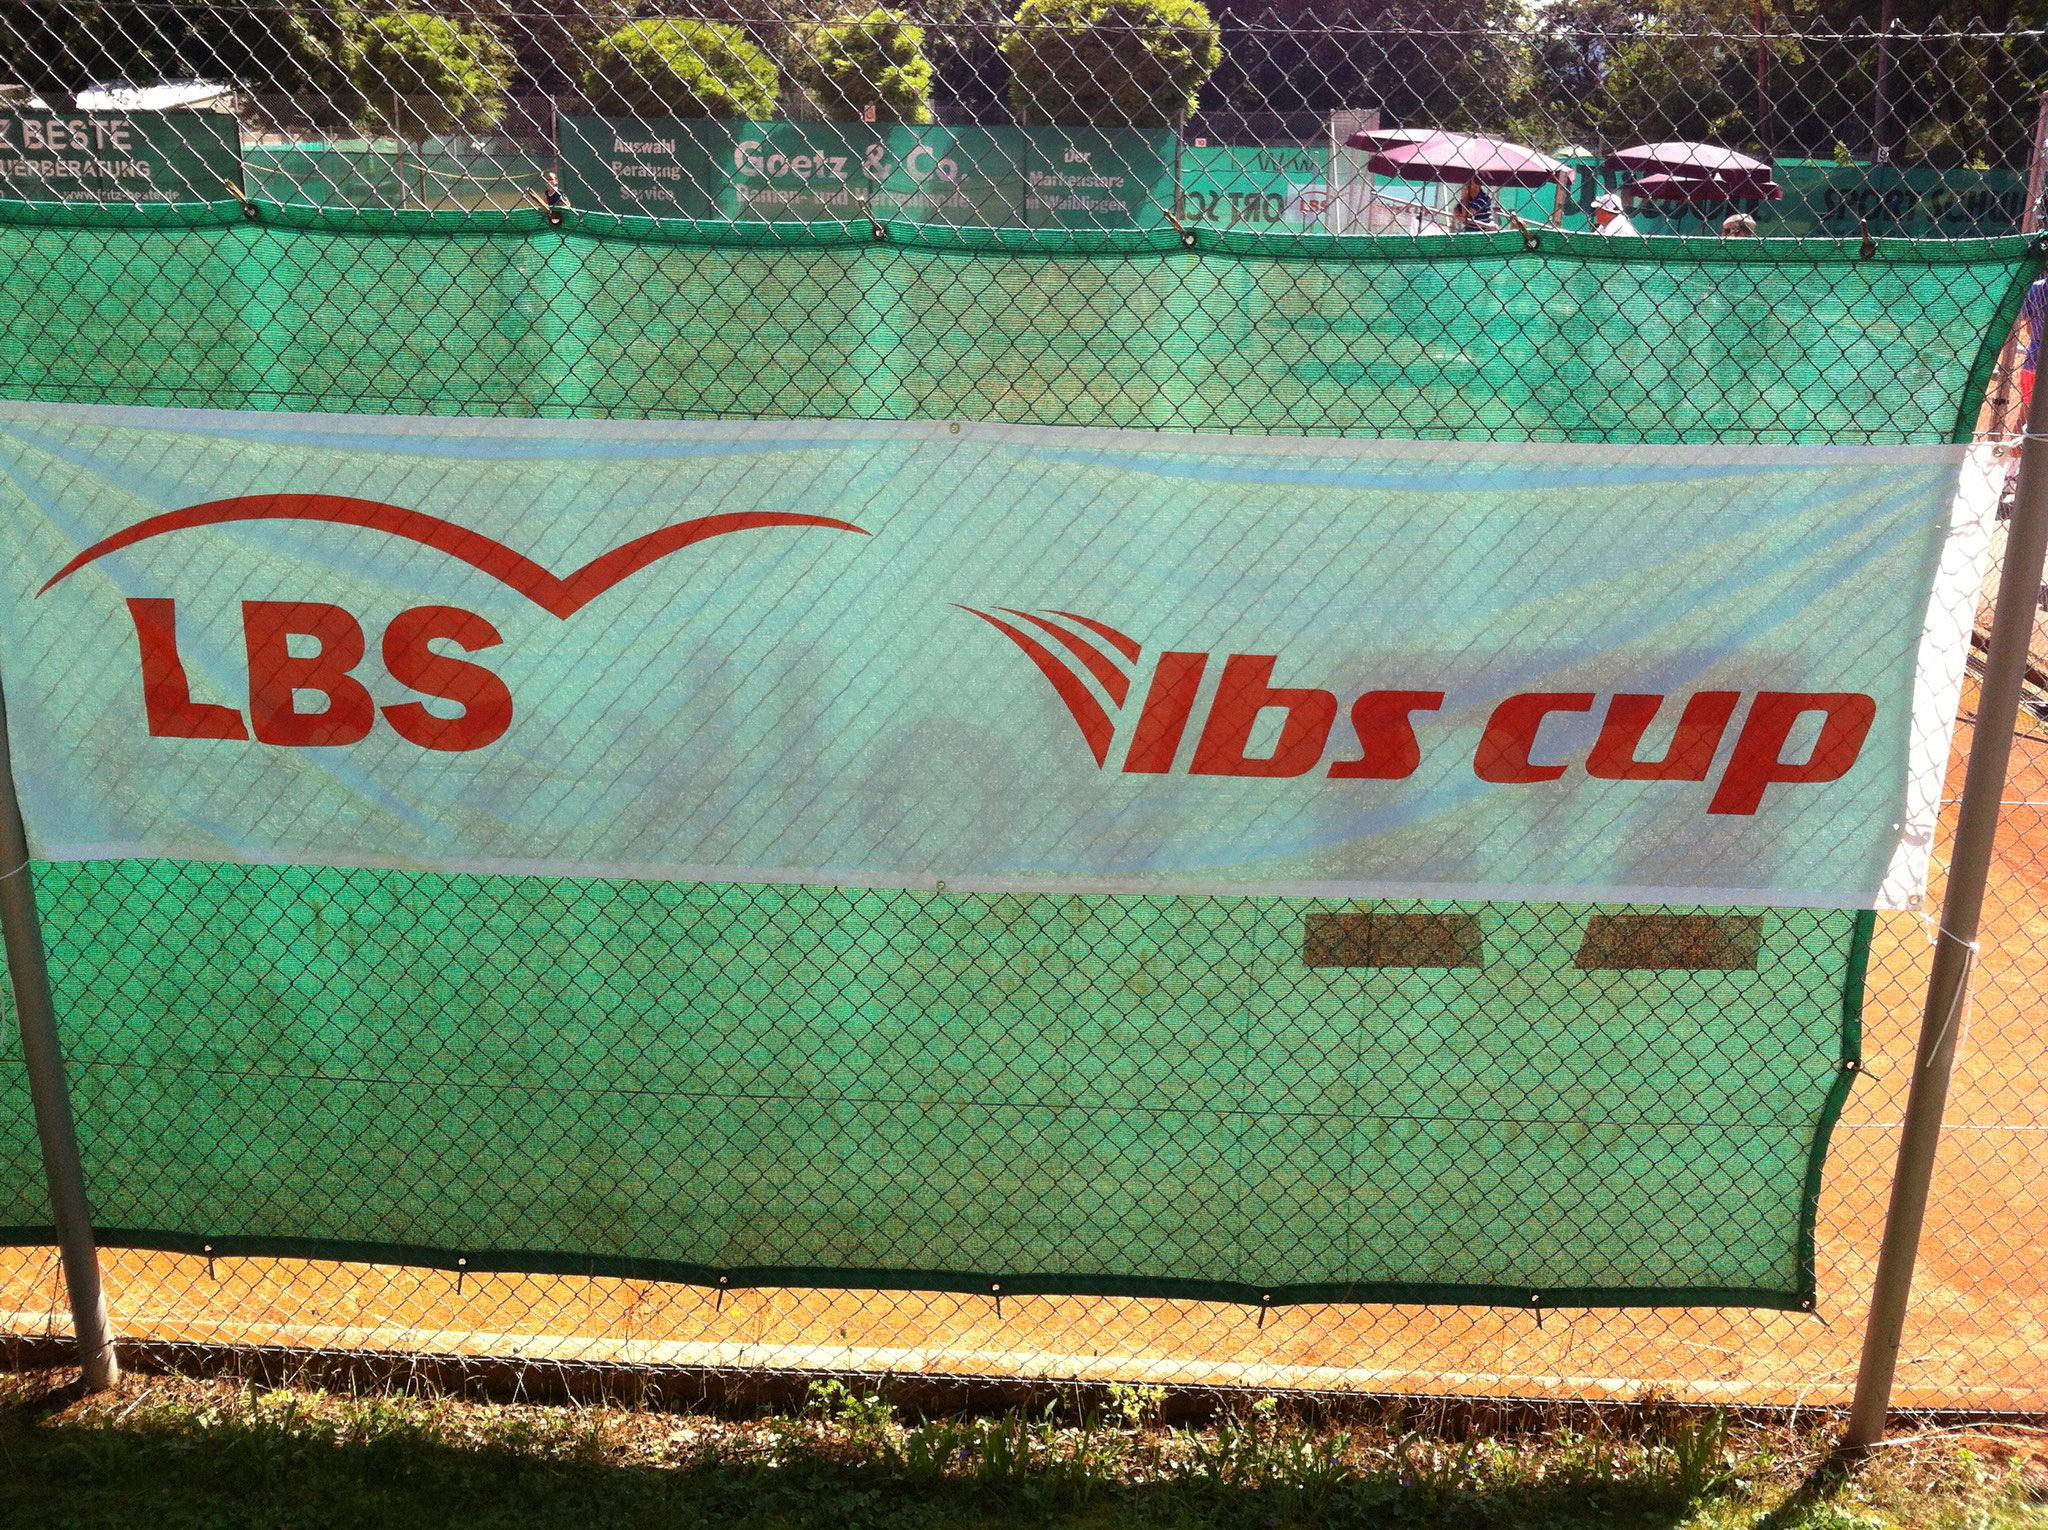 LBS-Cup